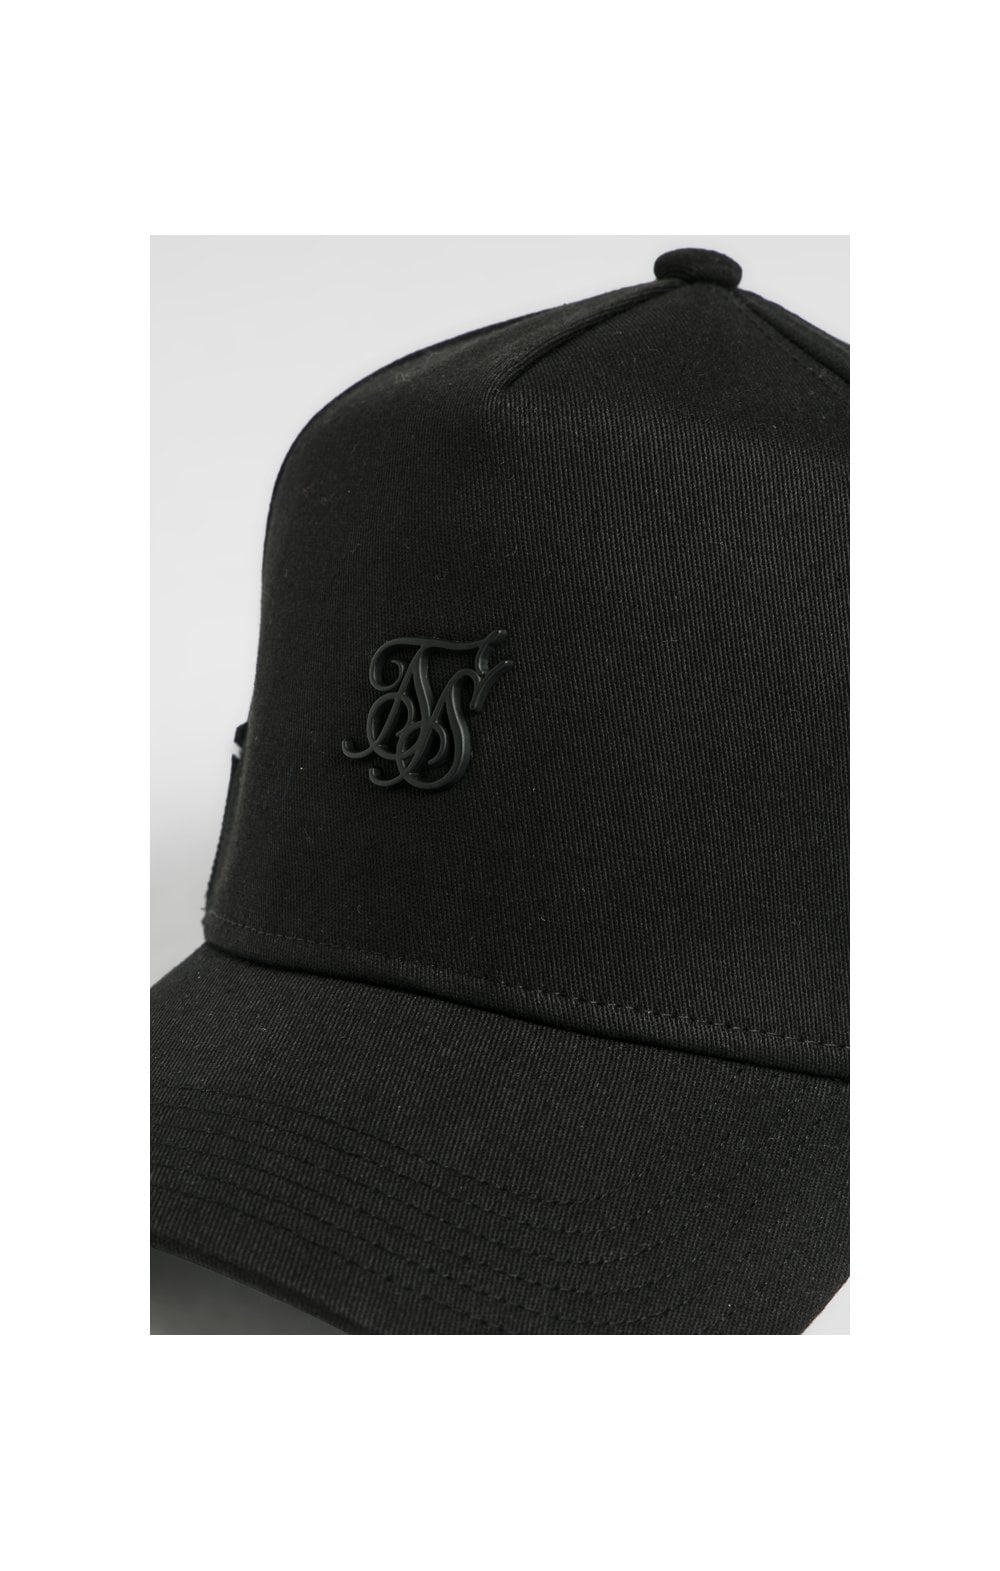 SikSilk Stretch Fit Full Trucker - Black (1)